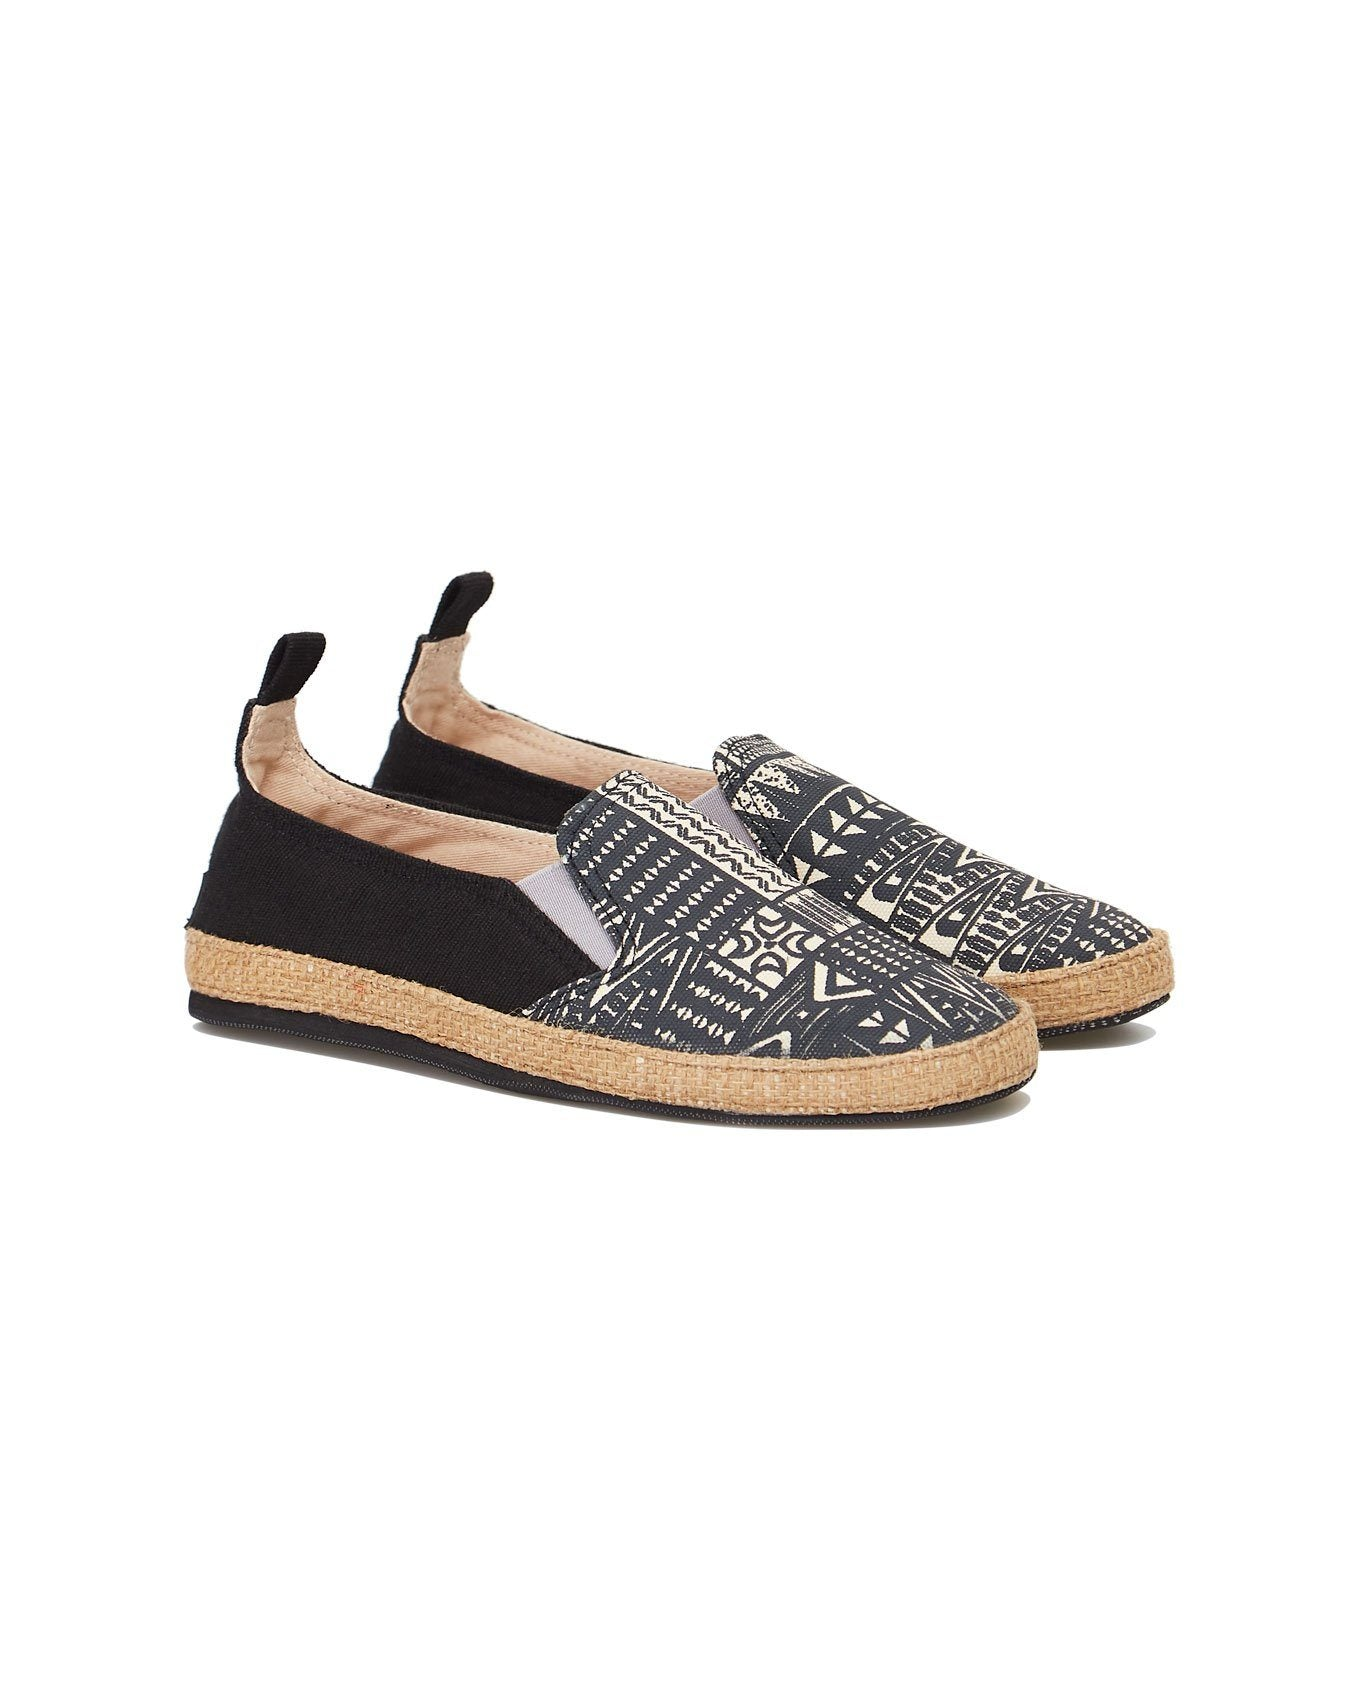 Shoes - KUNG FU Womens Shoe Tapa Coal